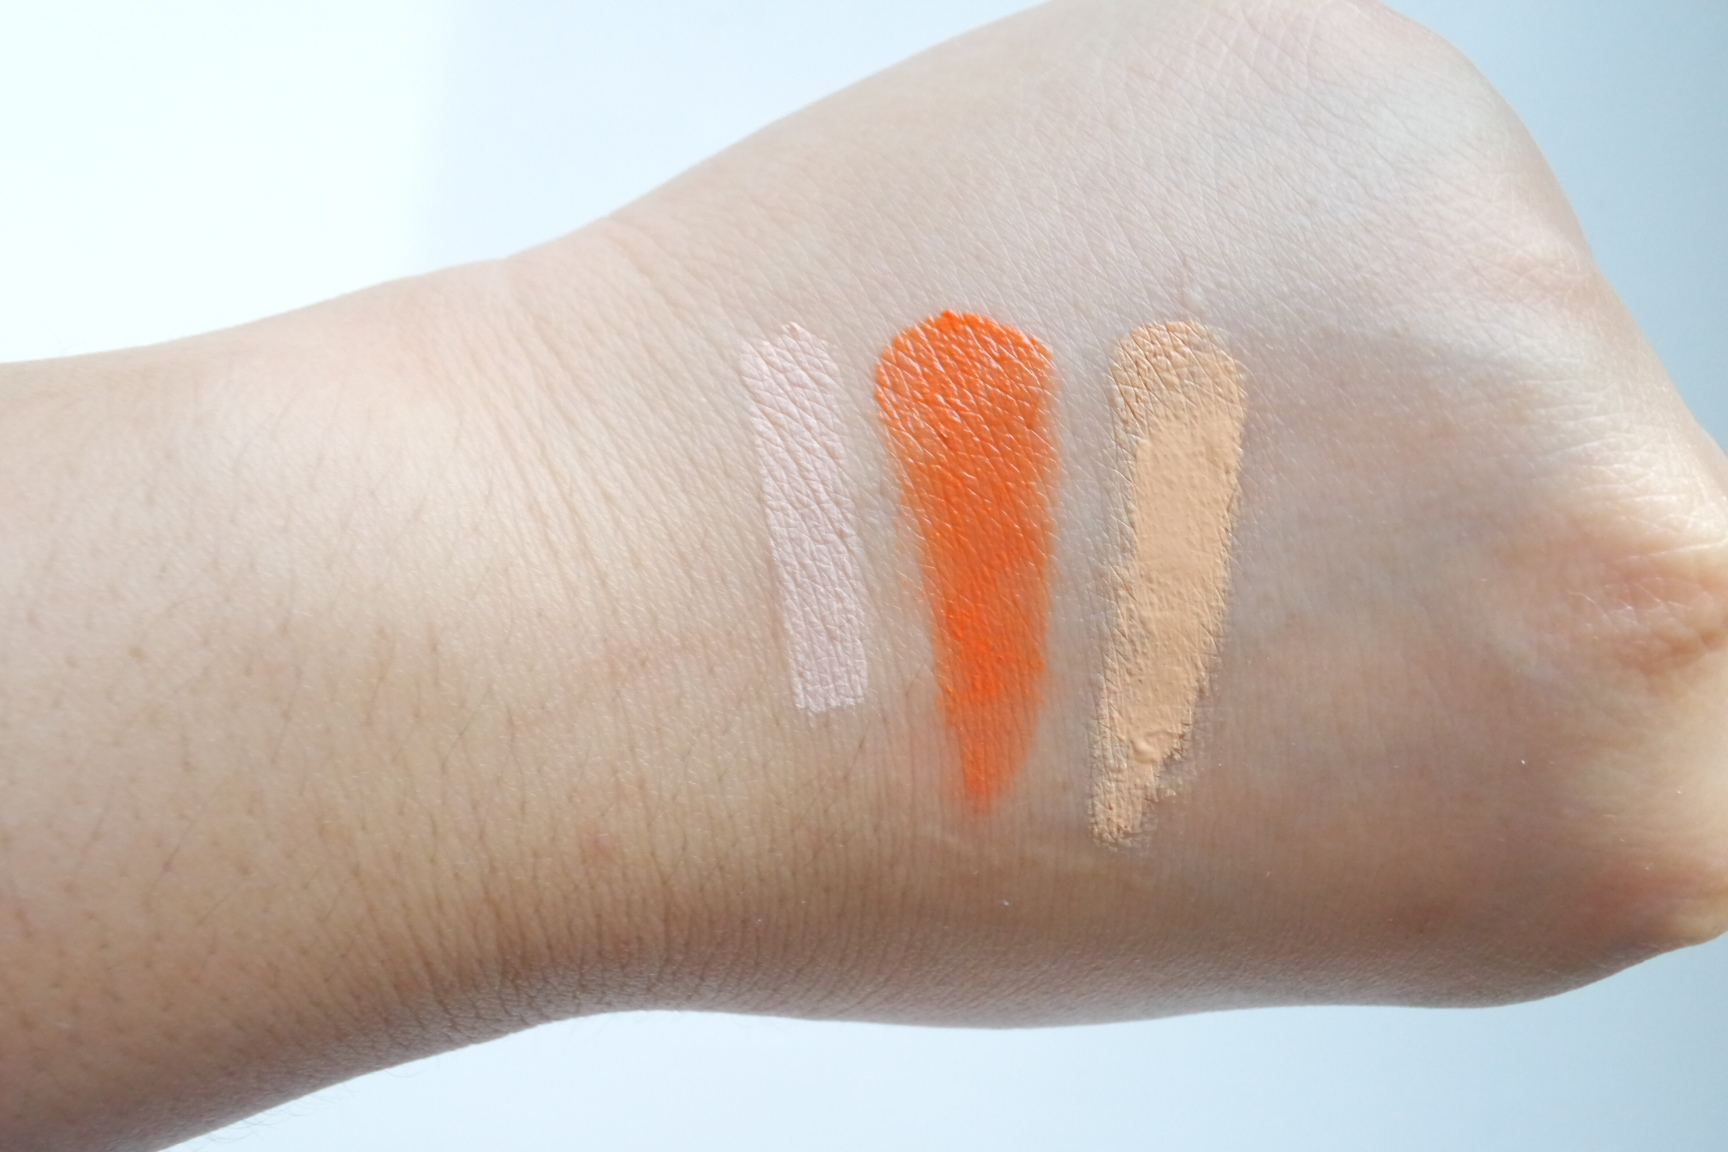 Swatches, from left: elf Eyelid Primer in Sheer, orange shade from Tony Moly Panda's Dream Dual Lip and Cheek Tint in Bubble Red, K-Palette Zero Kuma Concealer in 02